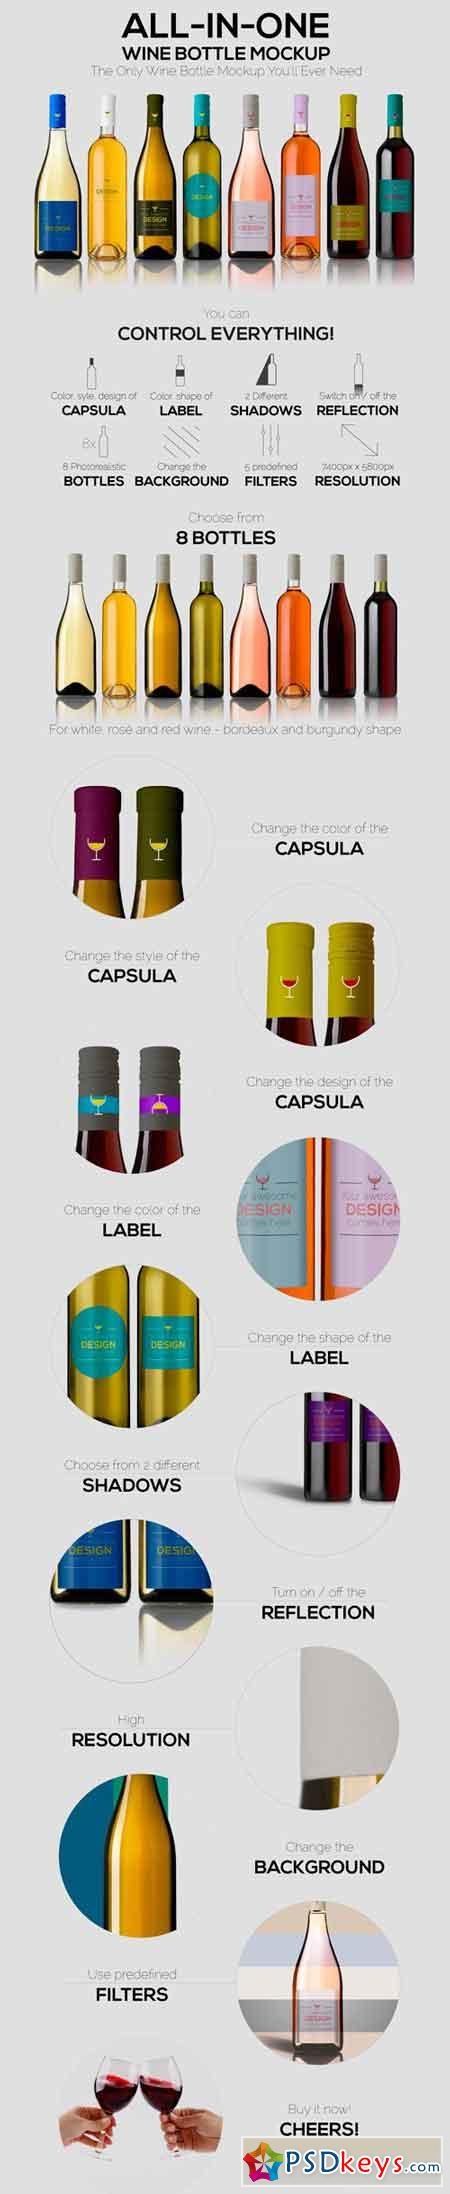 All-In-One Wine Bottle Mockup 744090